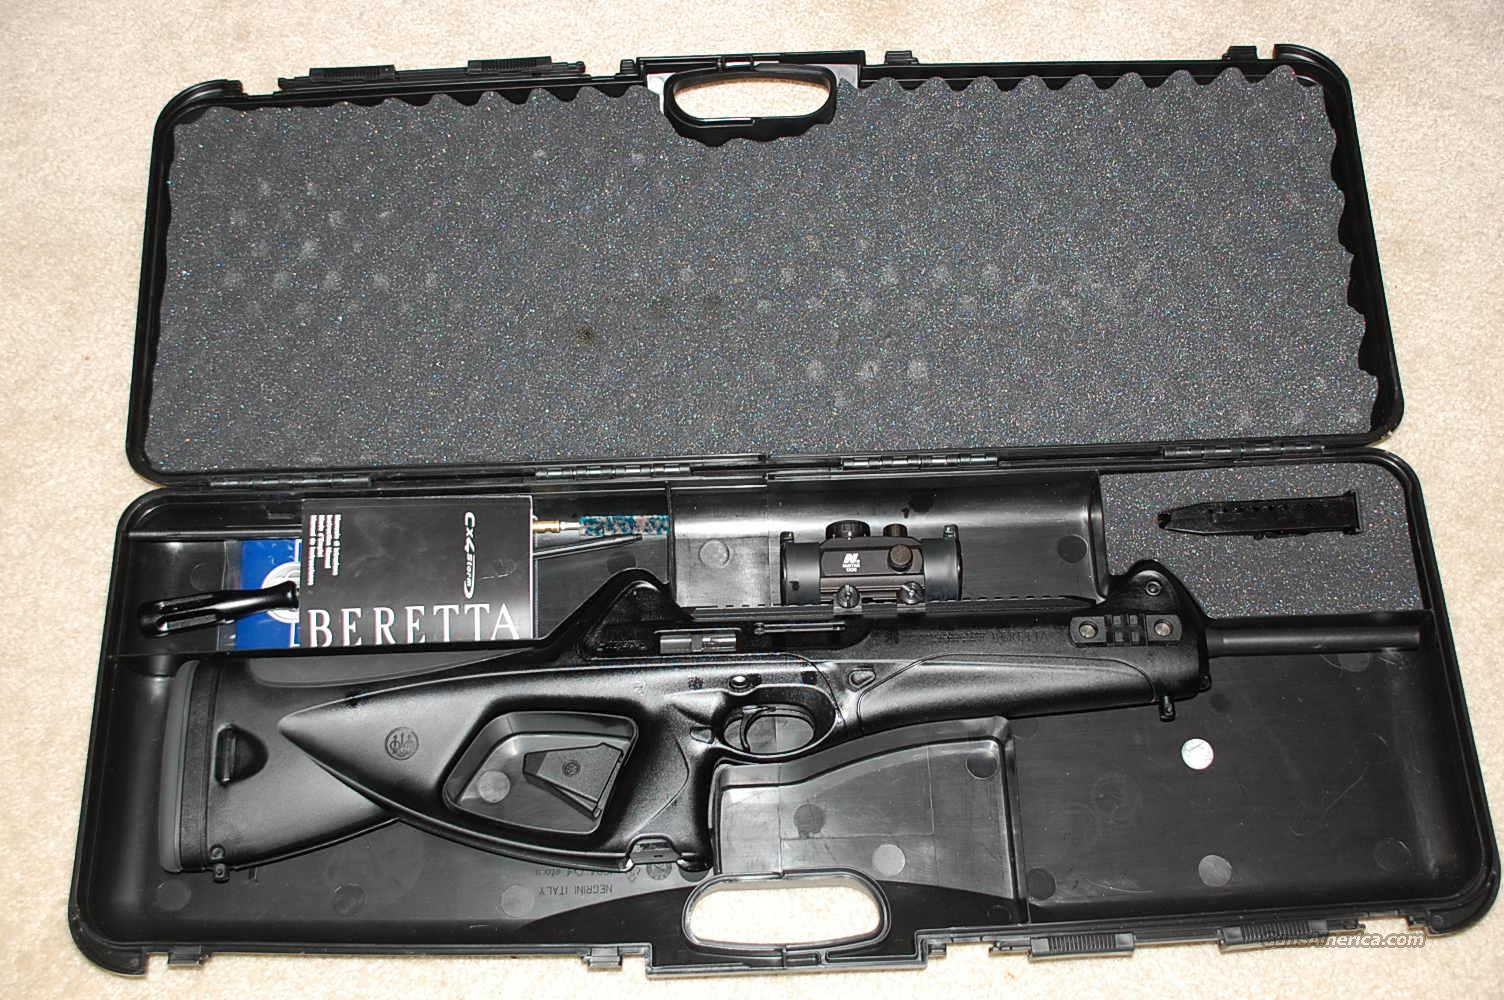 Beretta CX4 Storm 9mm Rifle w/ 1X Red Dot Scope  Guns > Rifles > Beretta Rifles > Storm